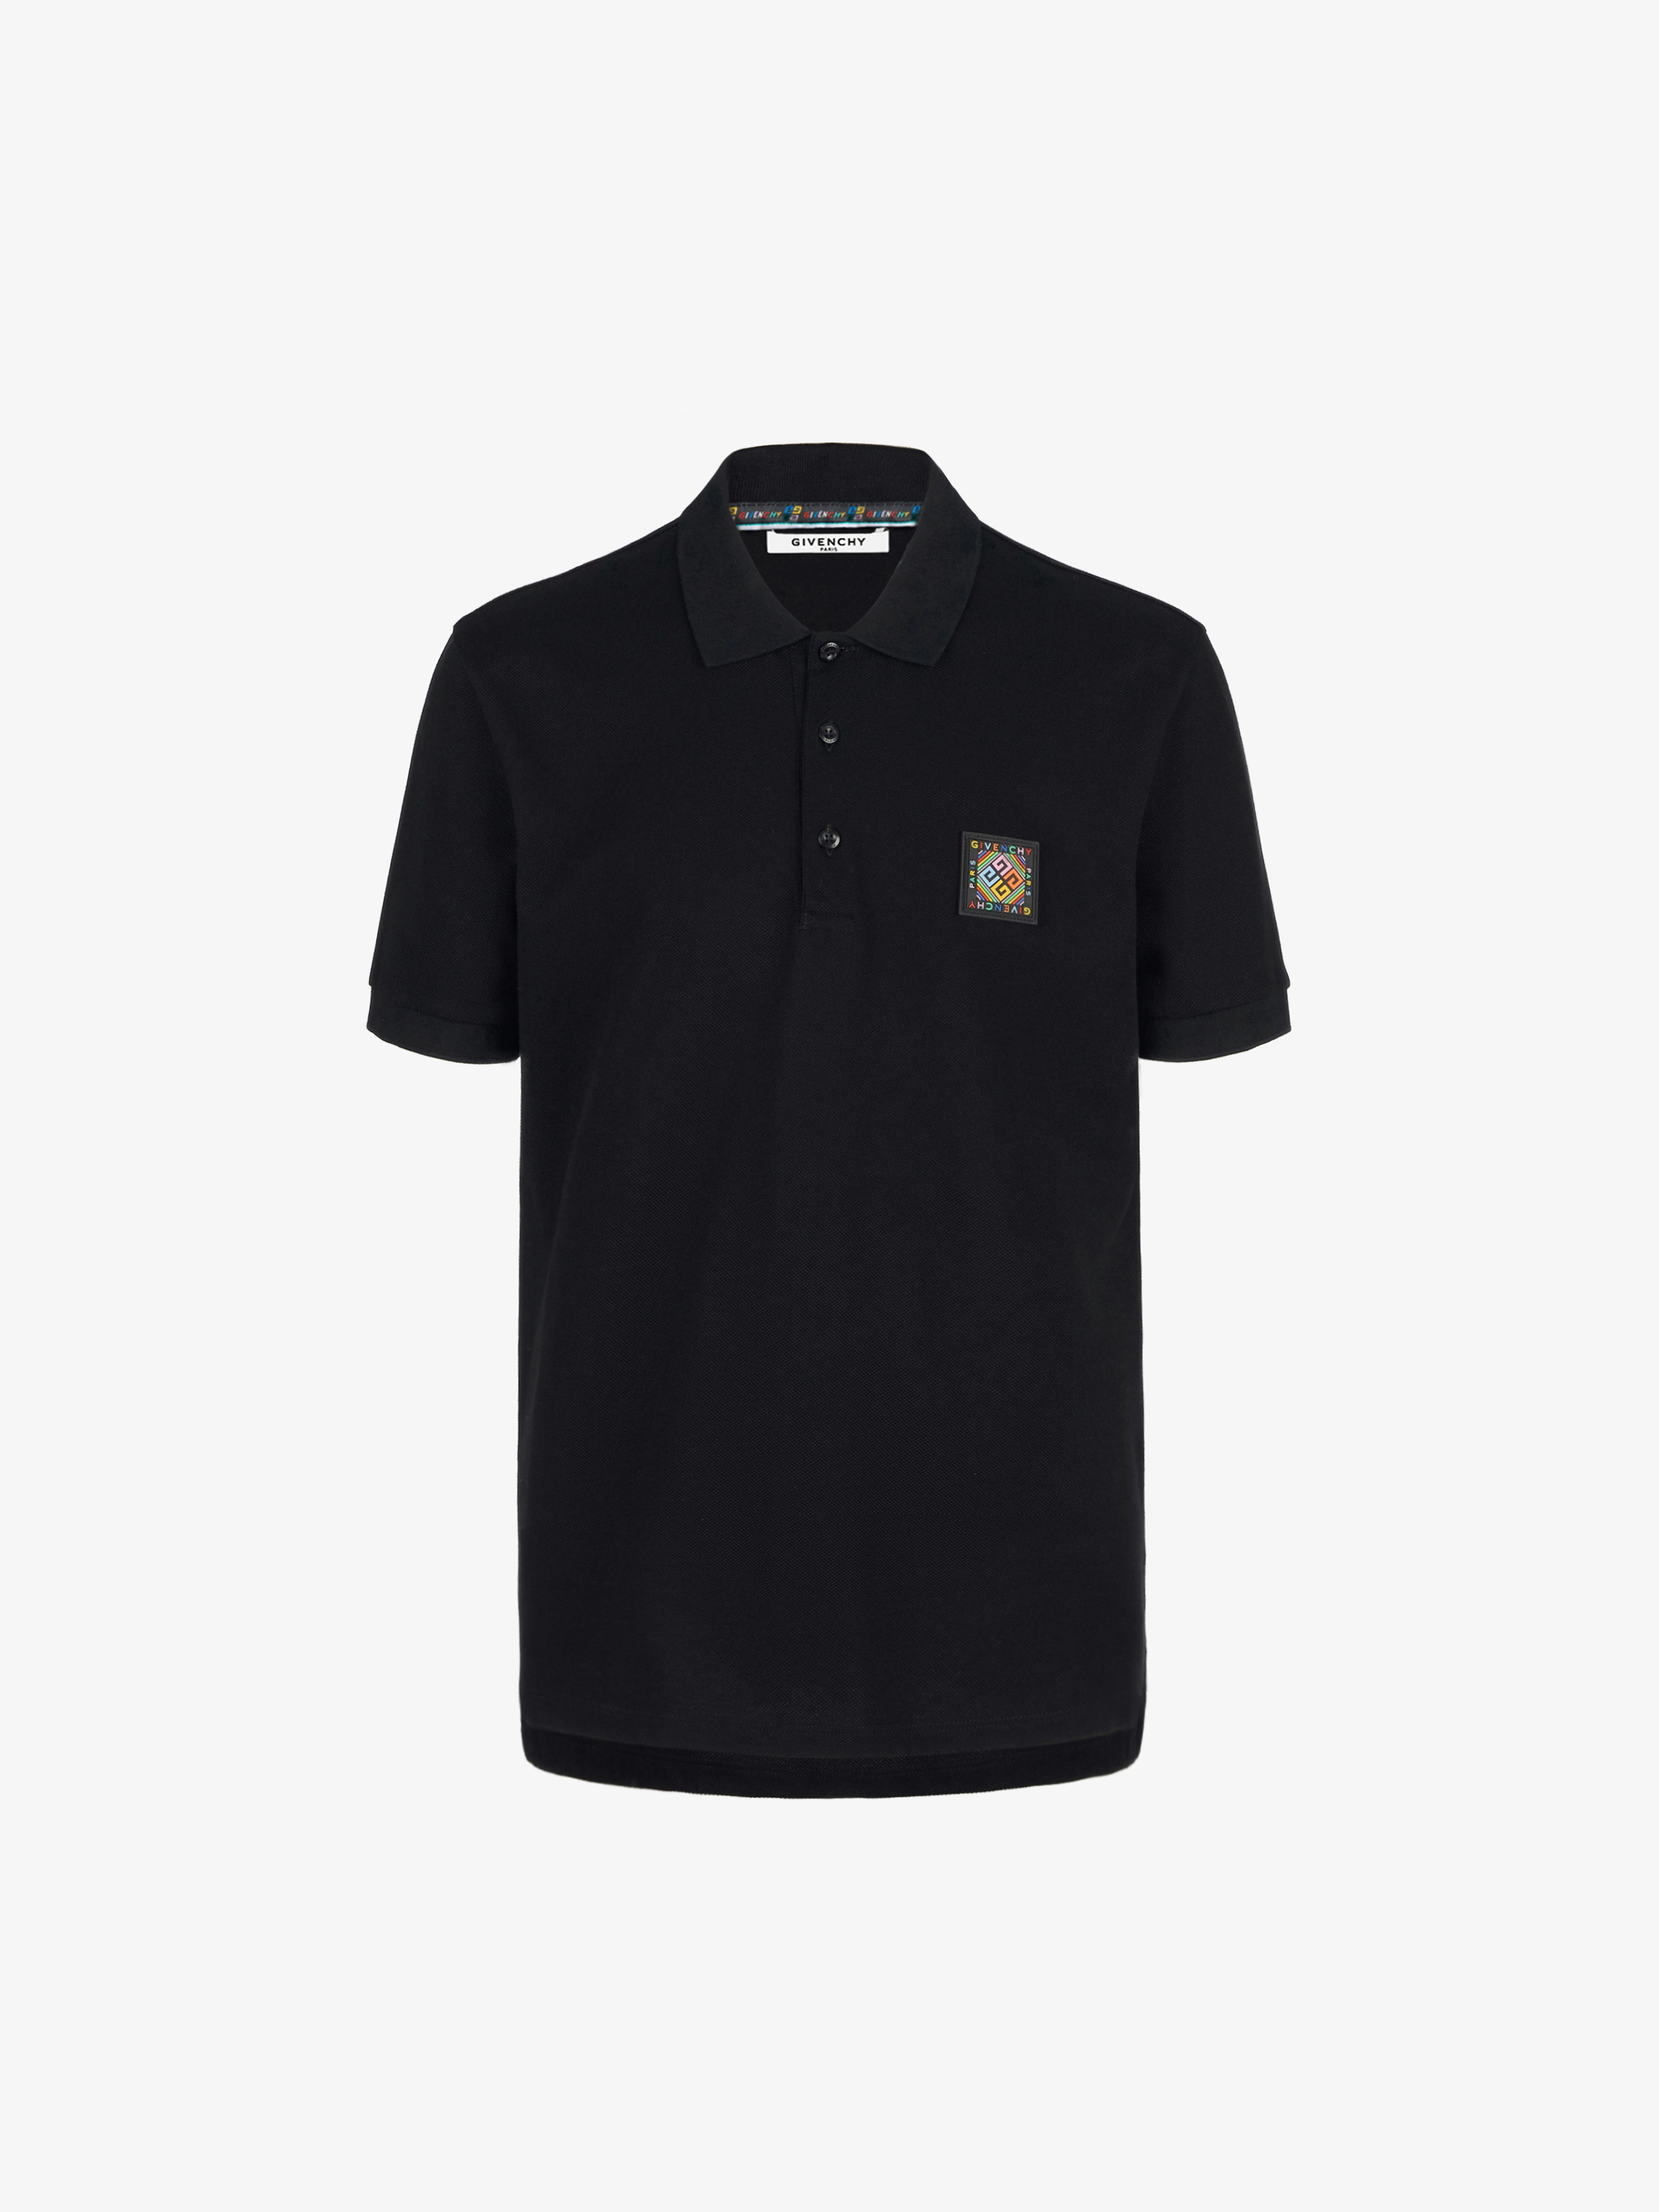 GIVENCHY 4G patch polo shirt